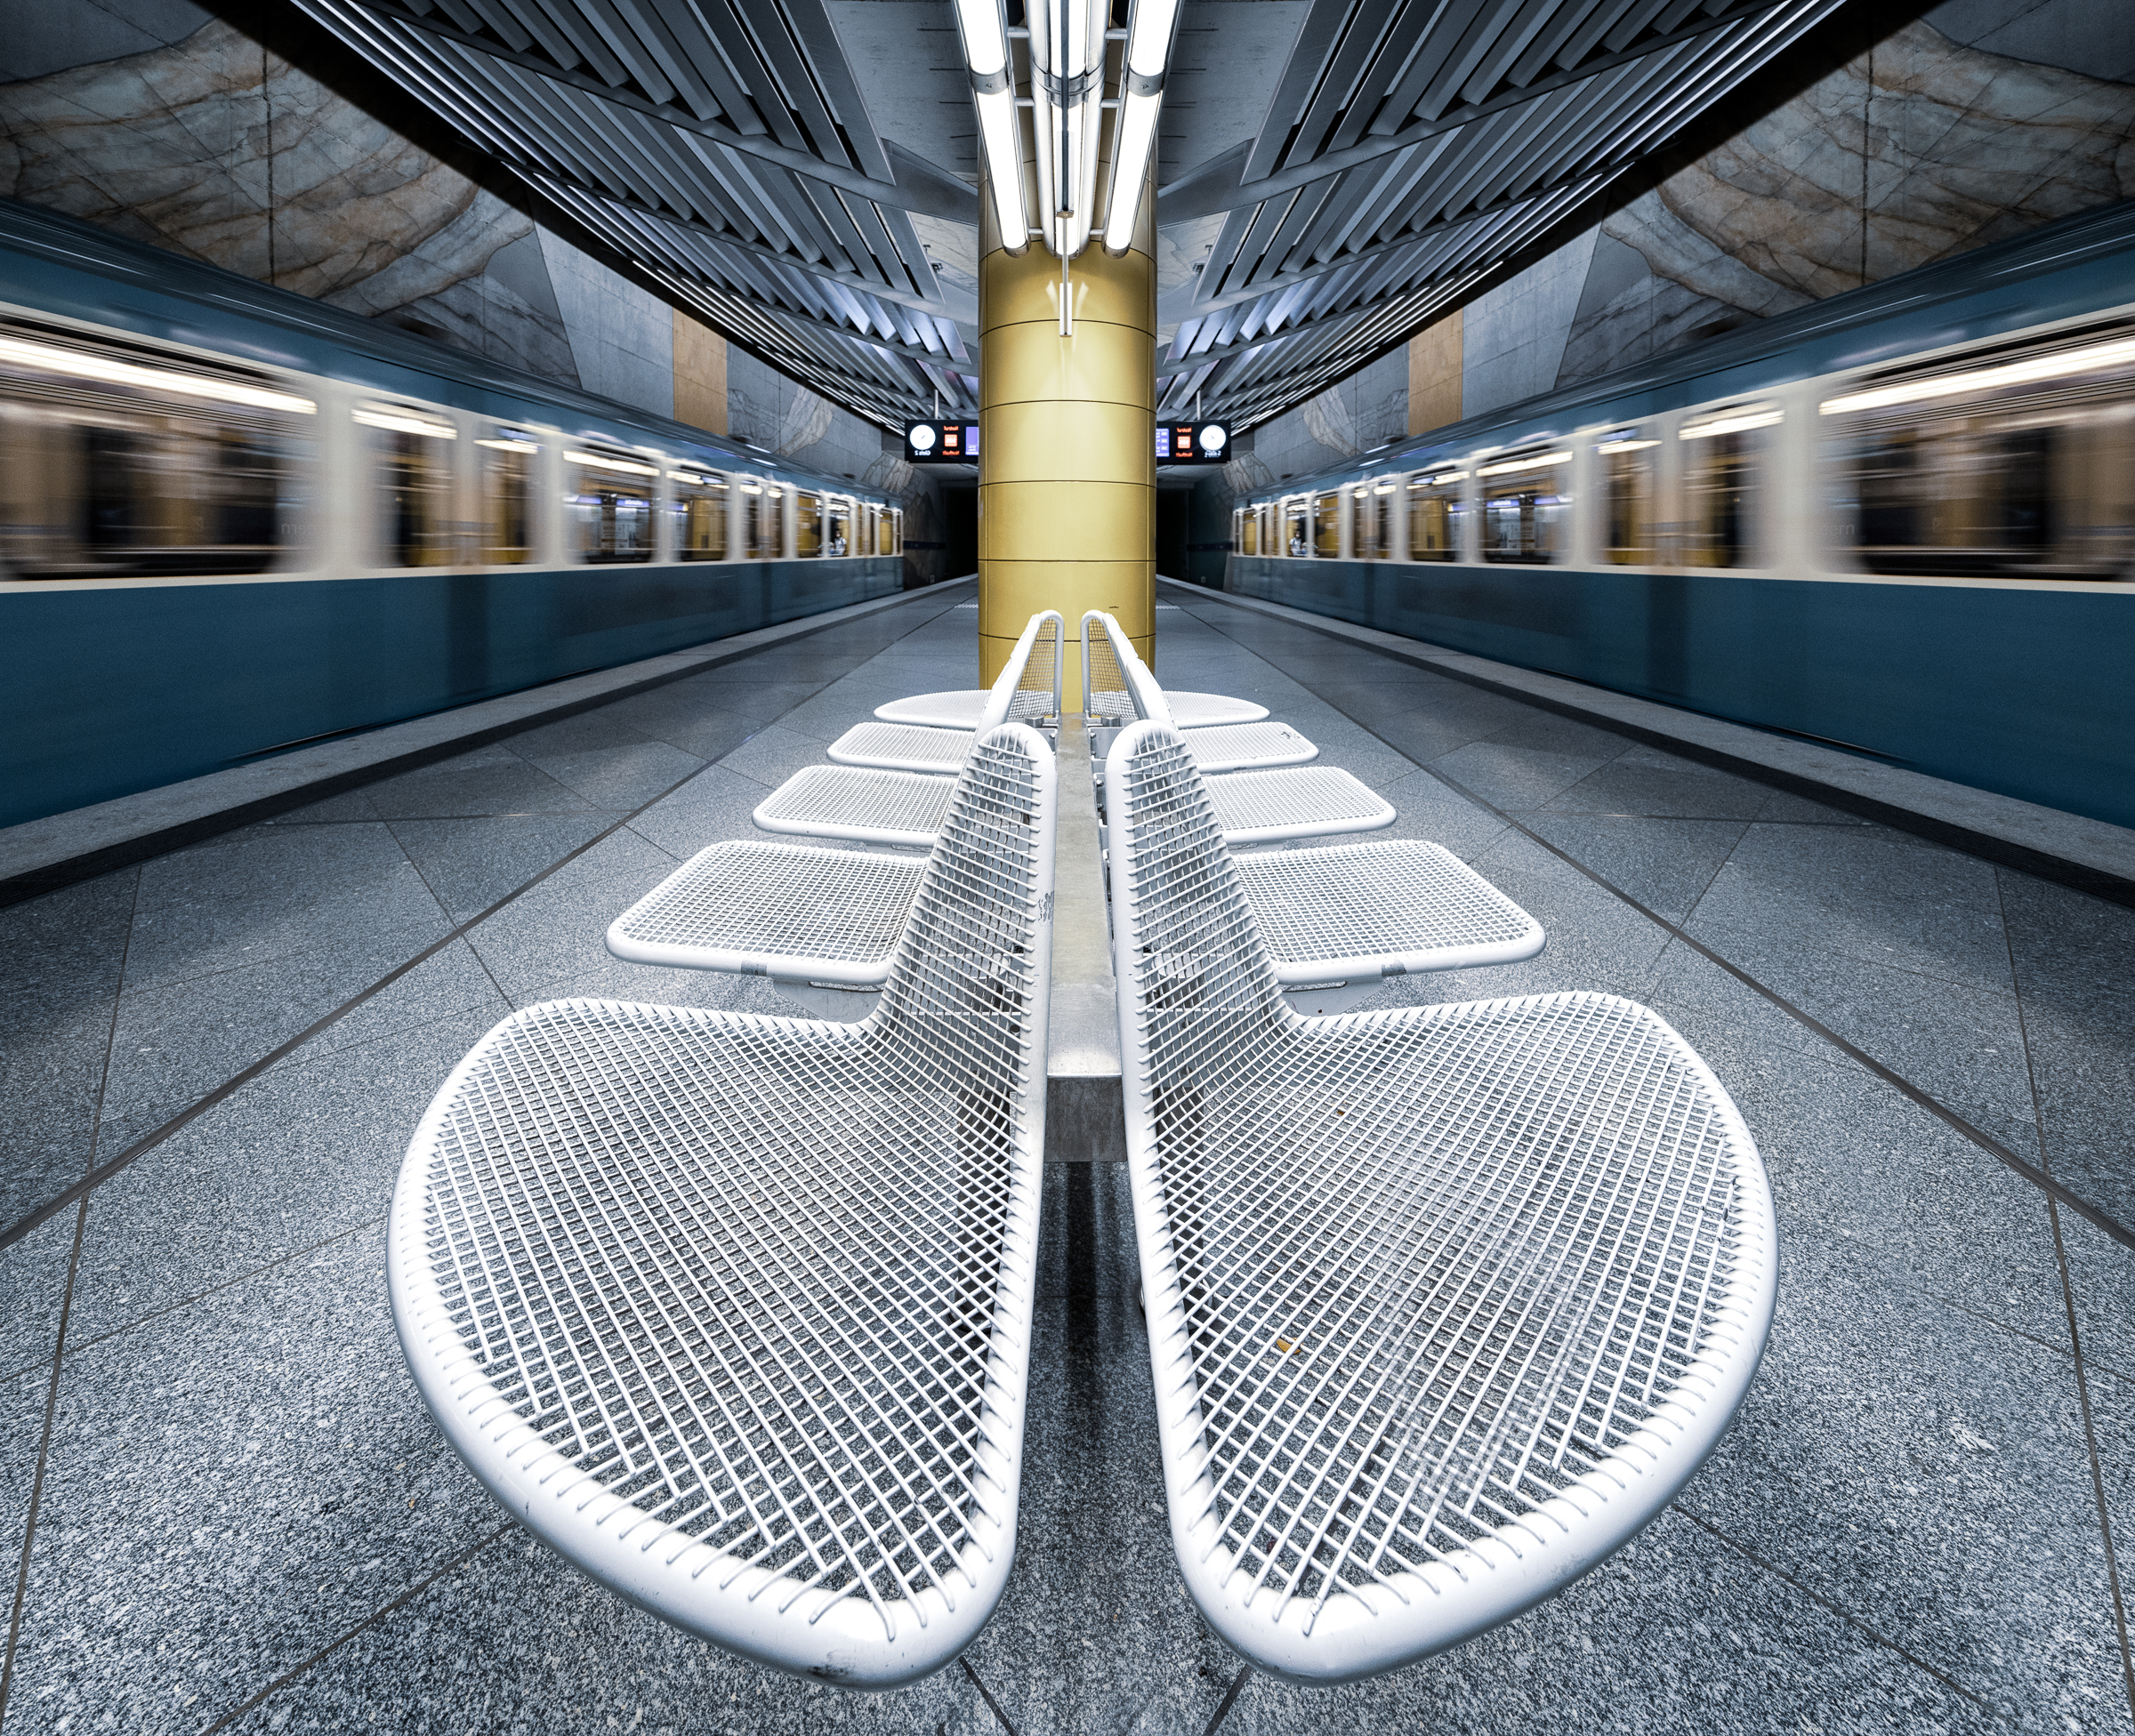 Seats and trains